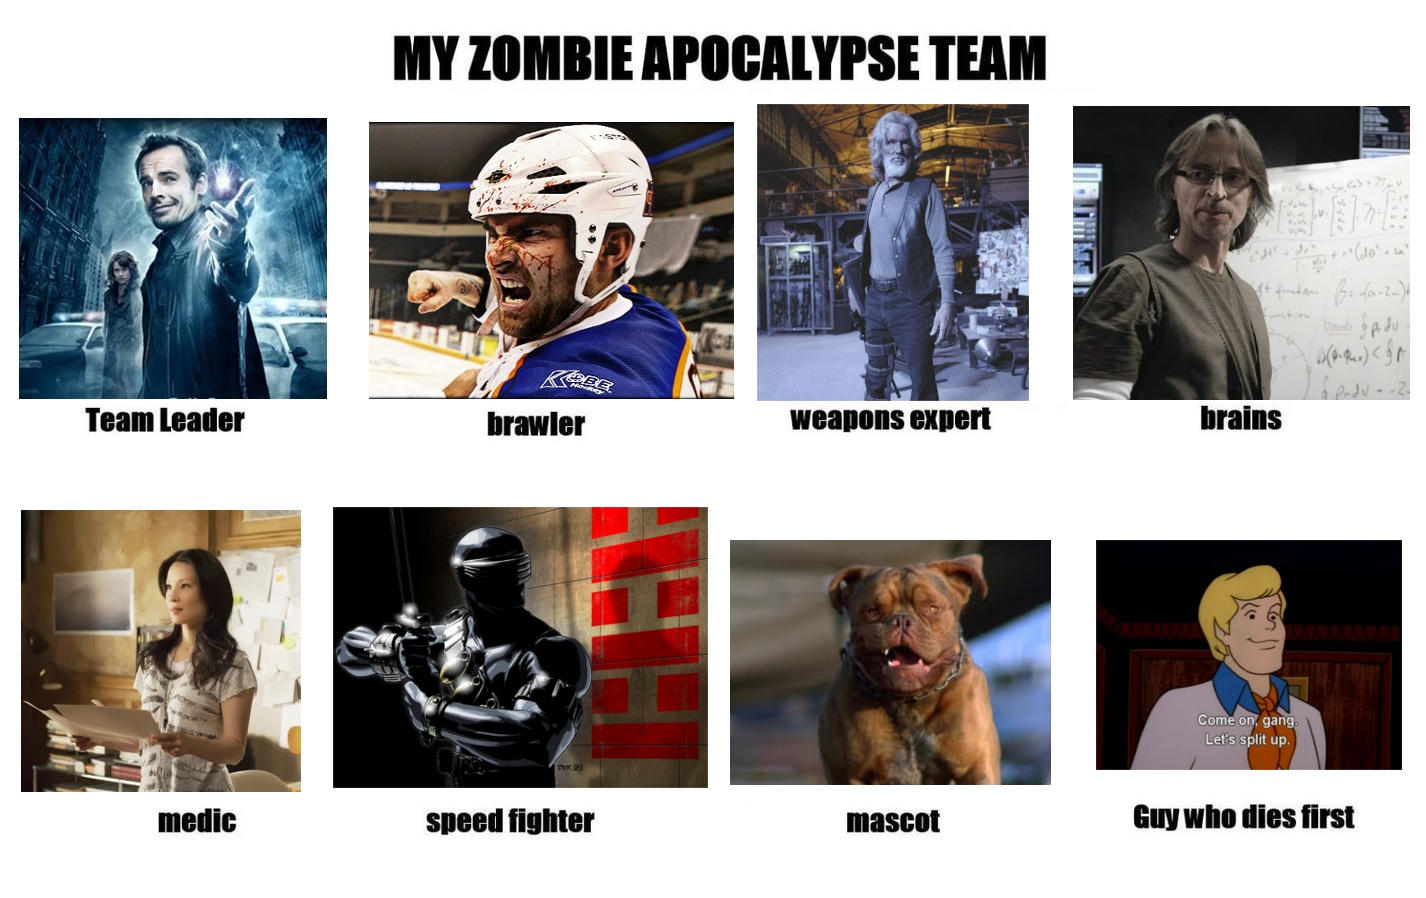 My Zombie Apocalypse Team by Vitacus